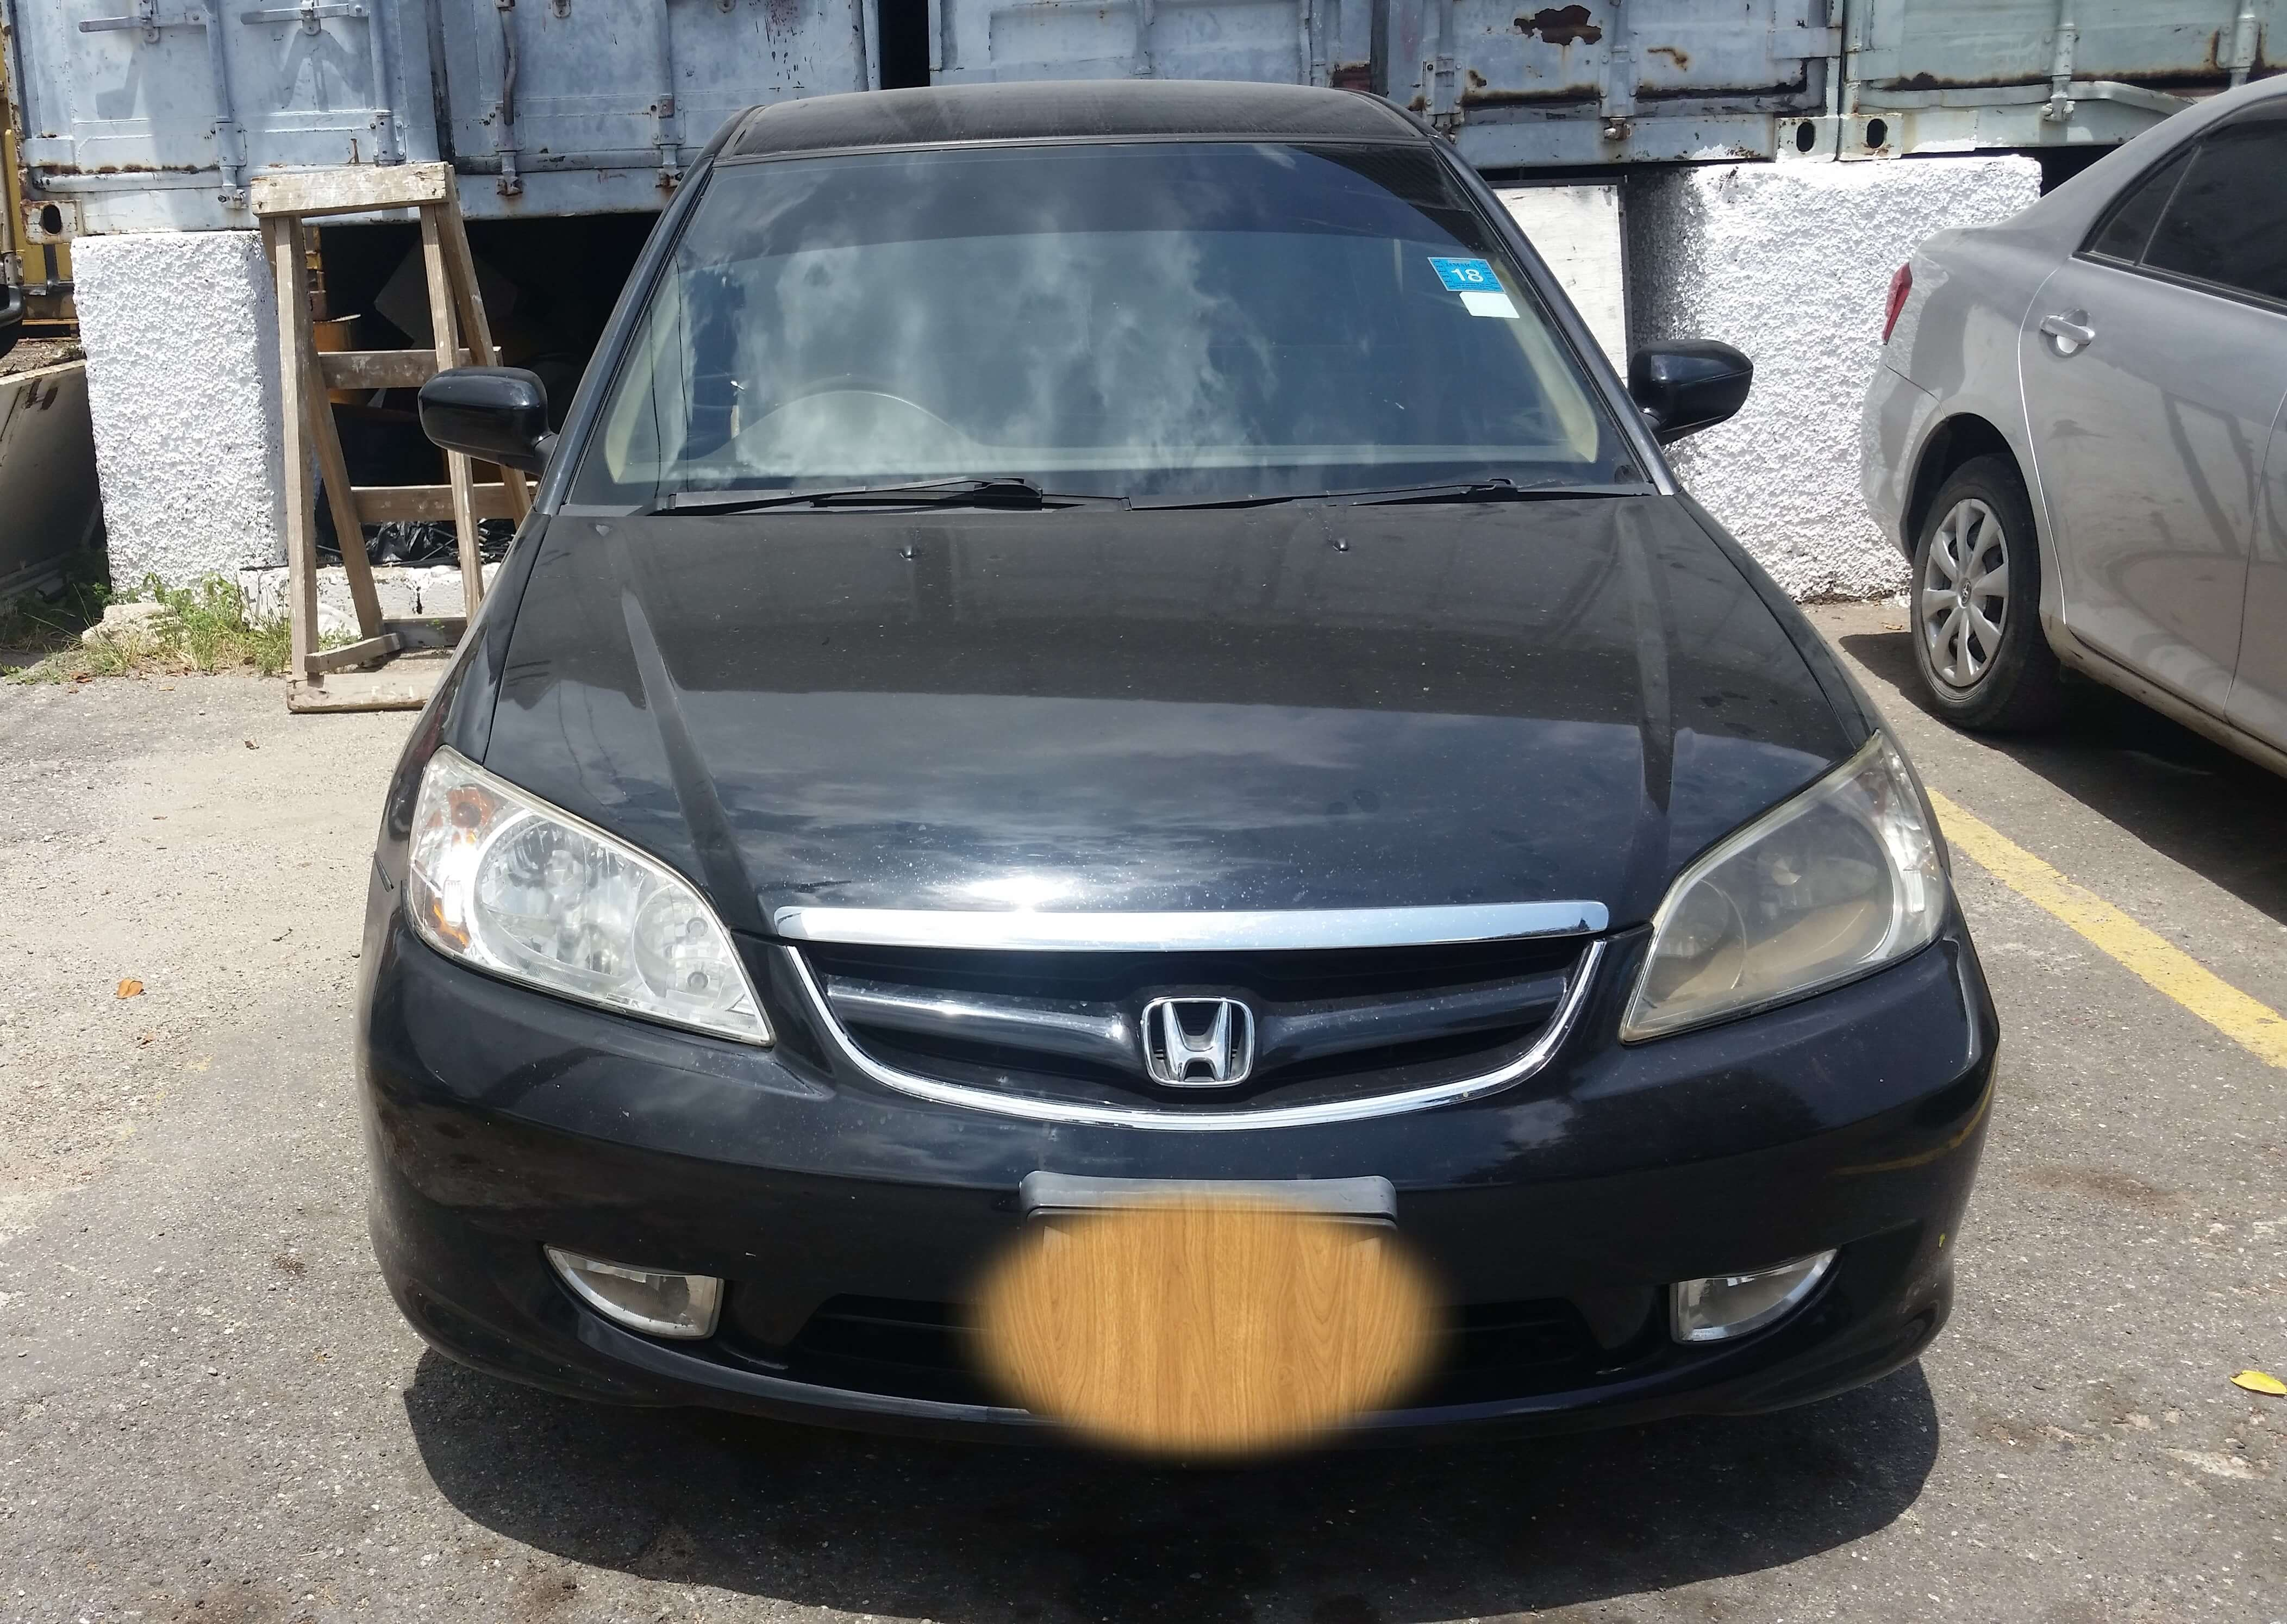 Cars For Sale I Jamaica: Honda Civic For Sale In Jamaica